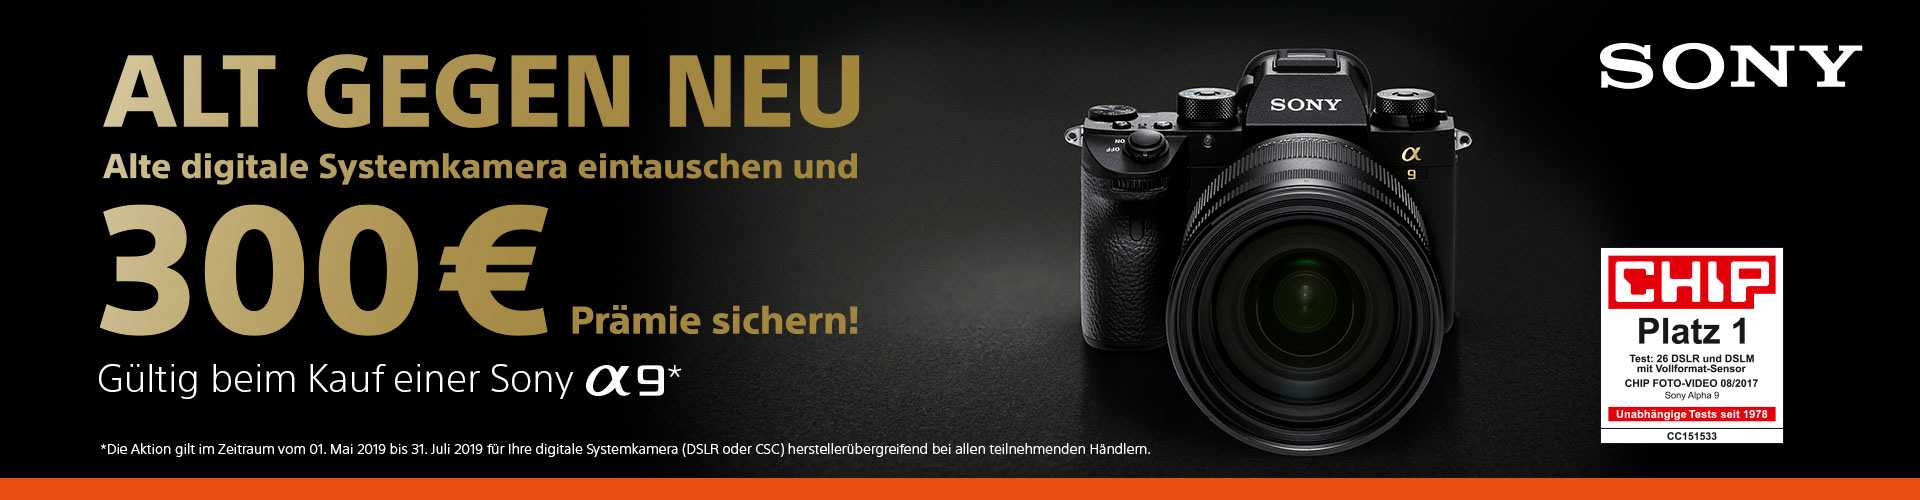 Sony Alpha 9 - Trade-in Aktion